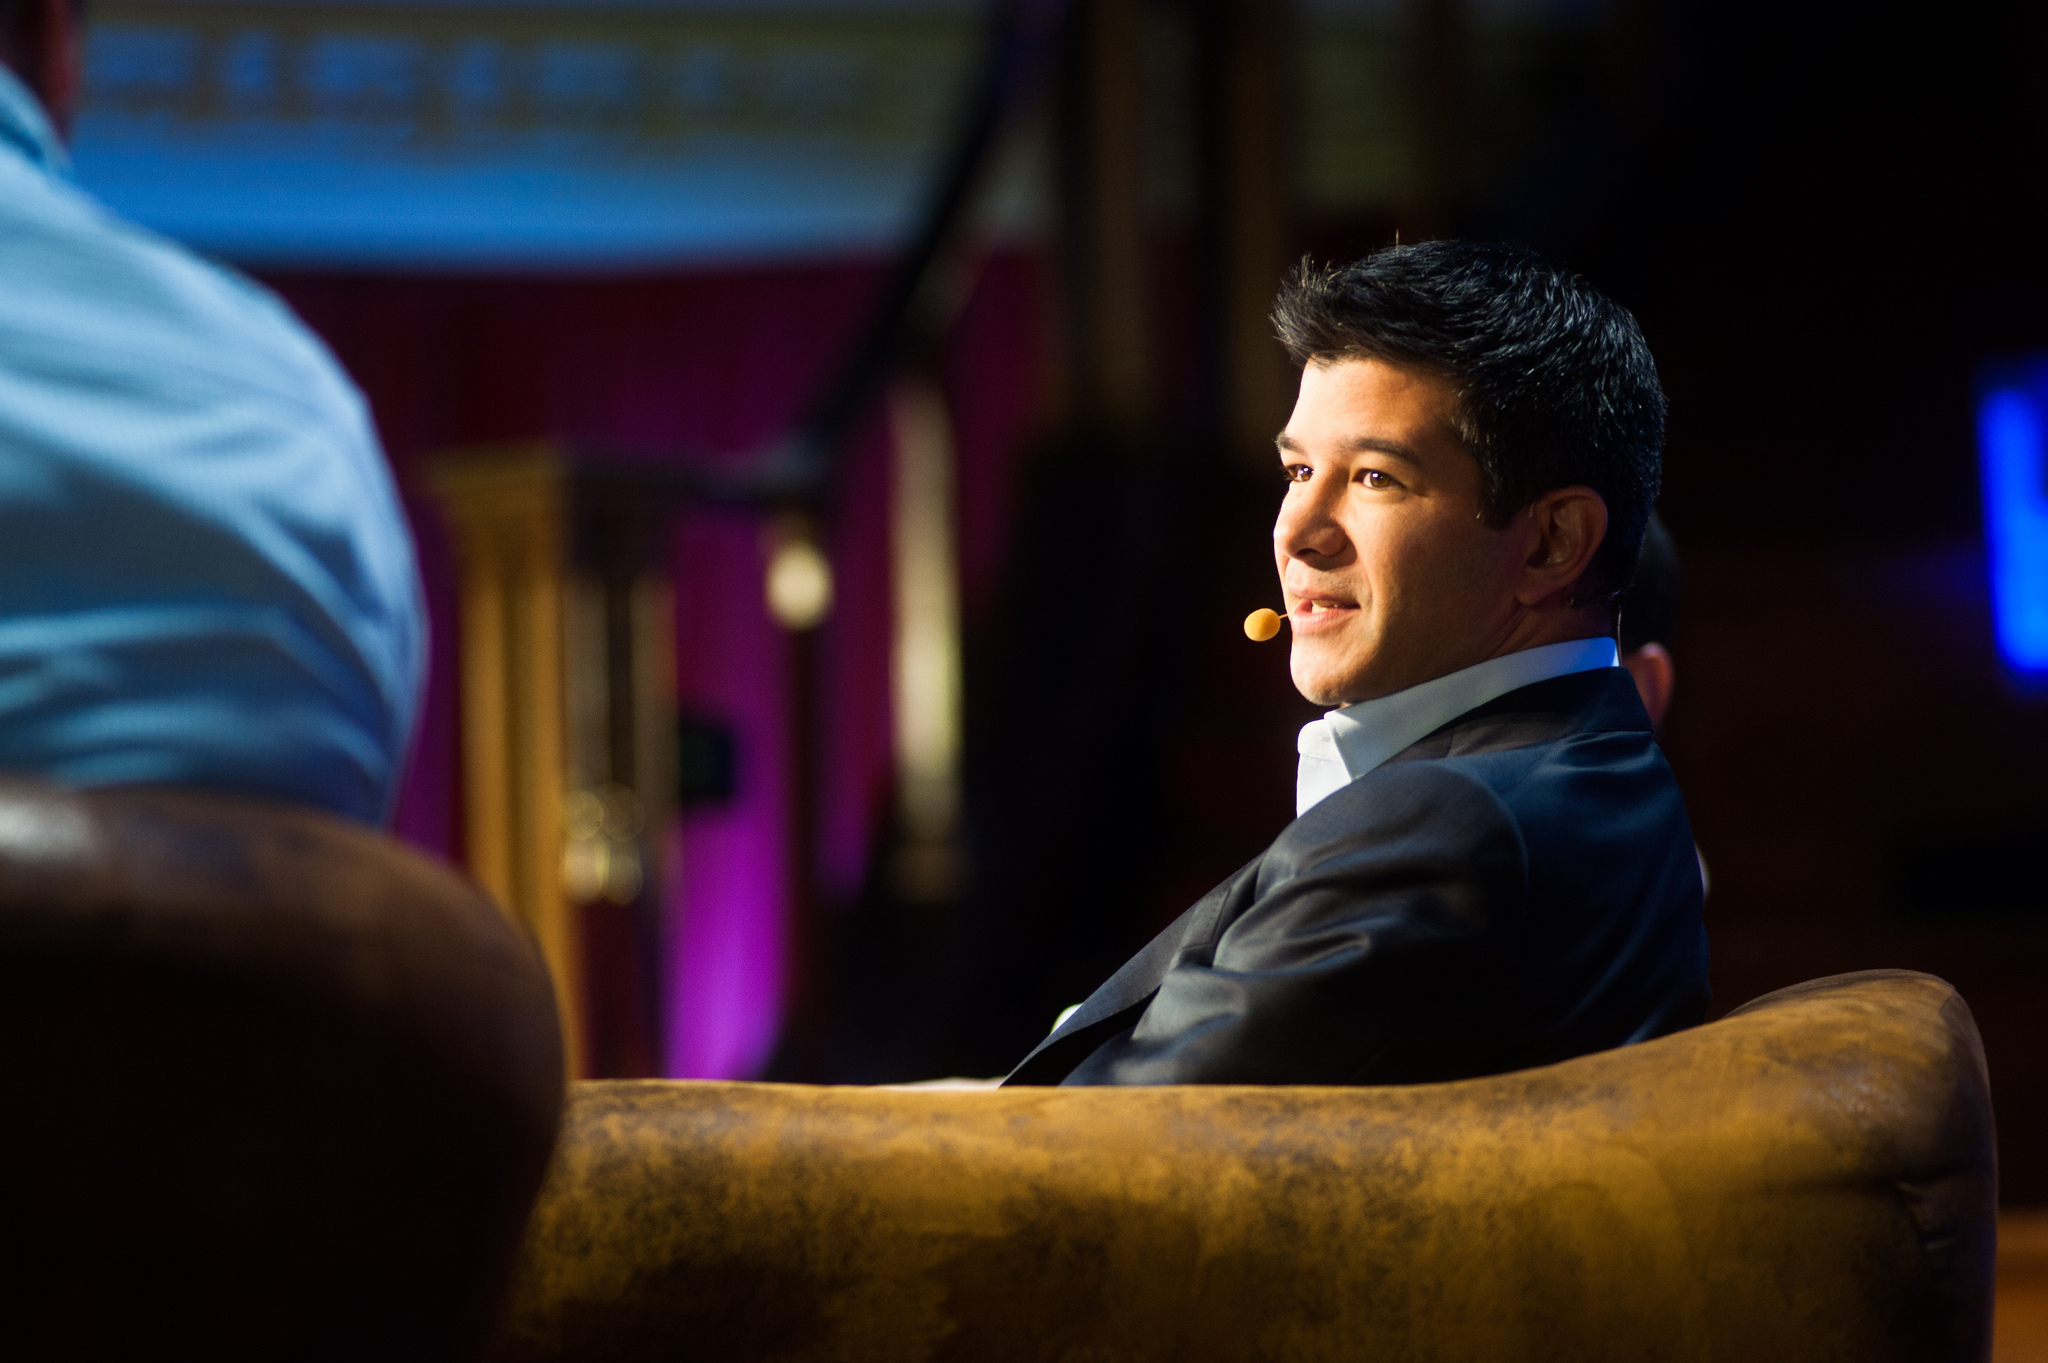 Co-founder and CEO of Uber Travis Kalanick.